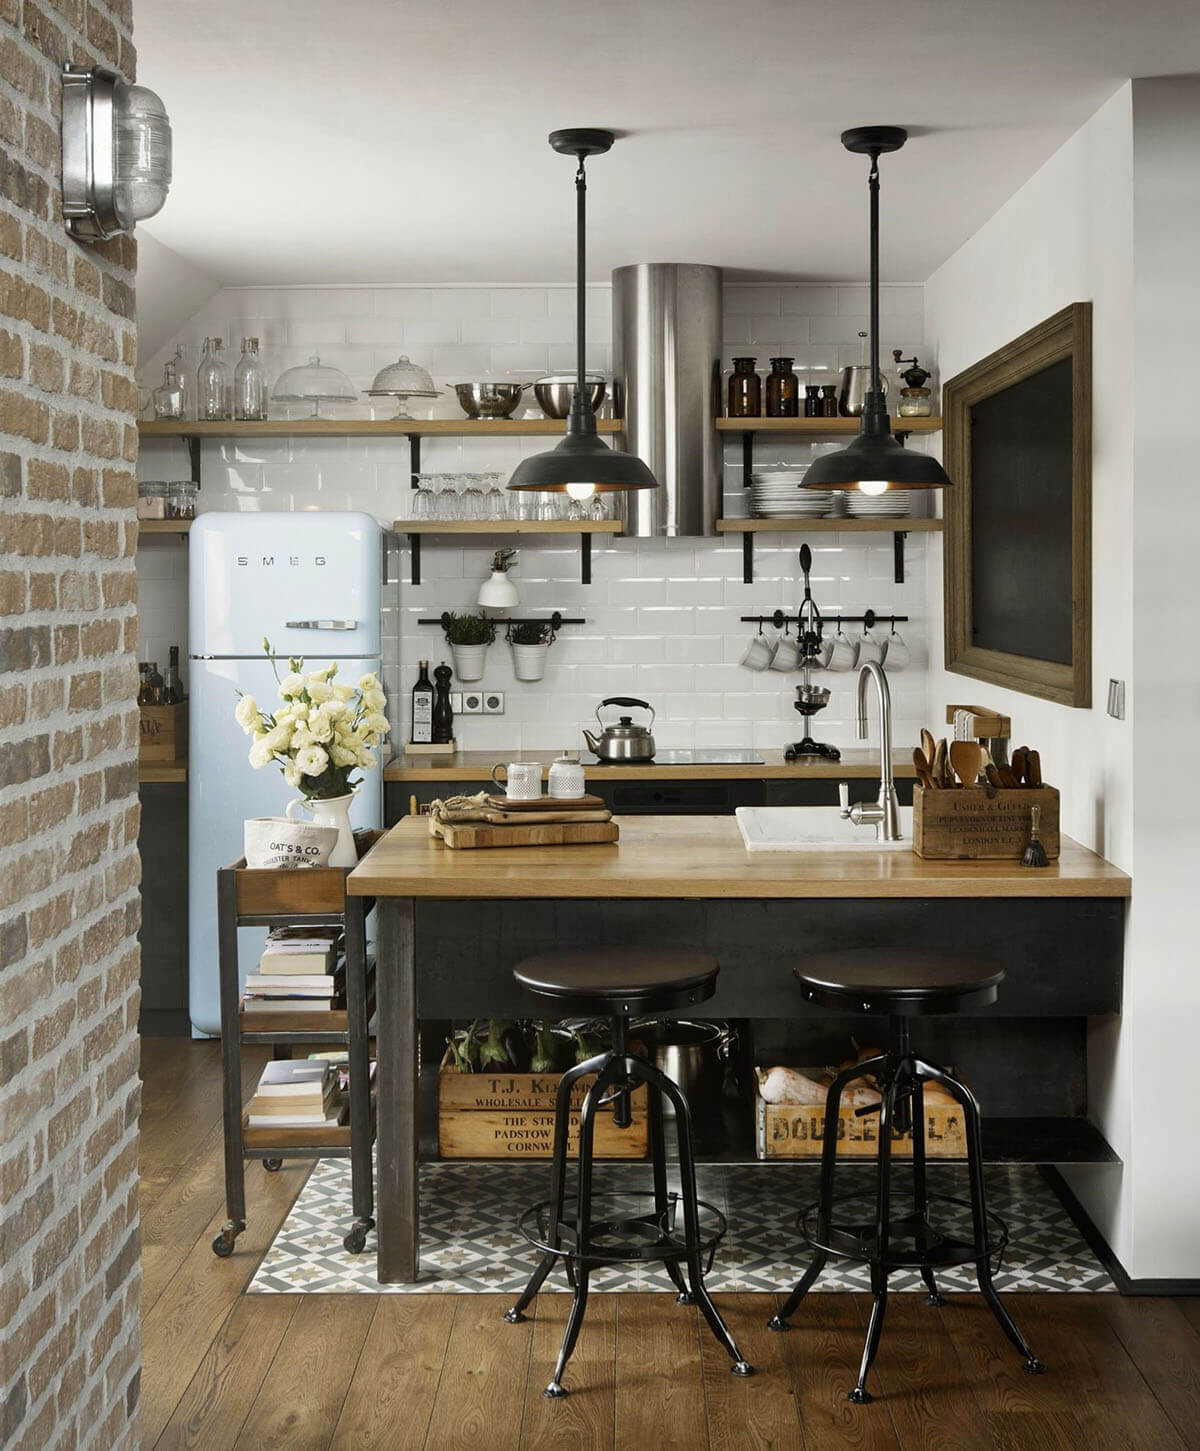 30 Best Small Kitchen Decor And Design Ideas For 2020